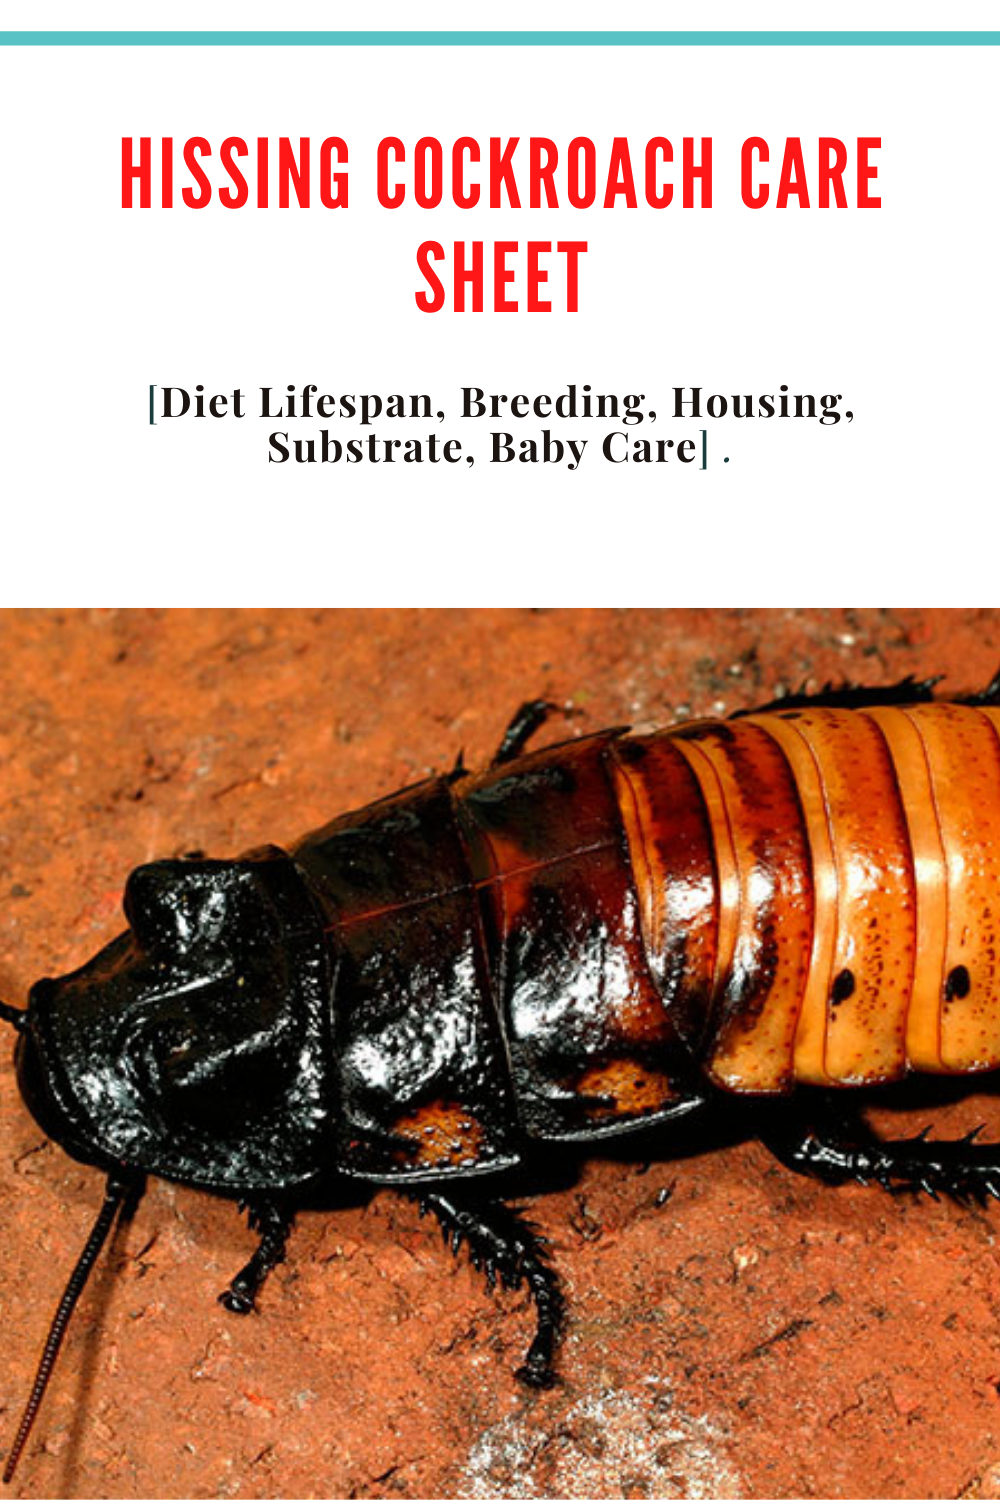 Hissing Cockroach Care